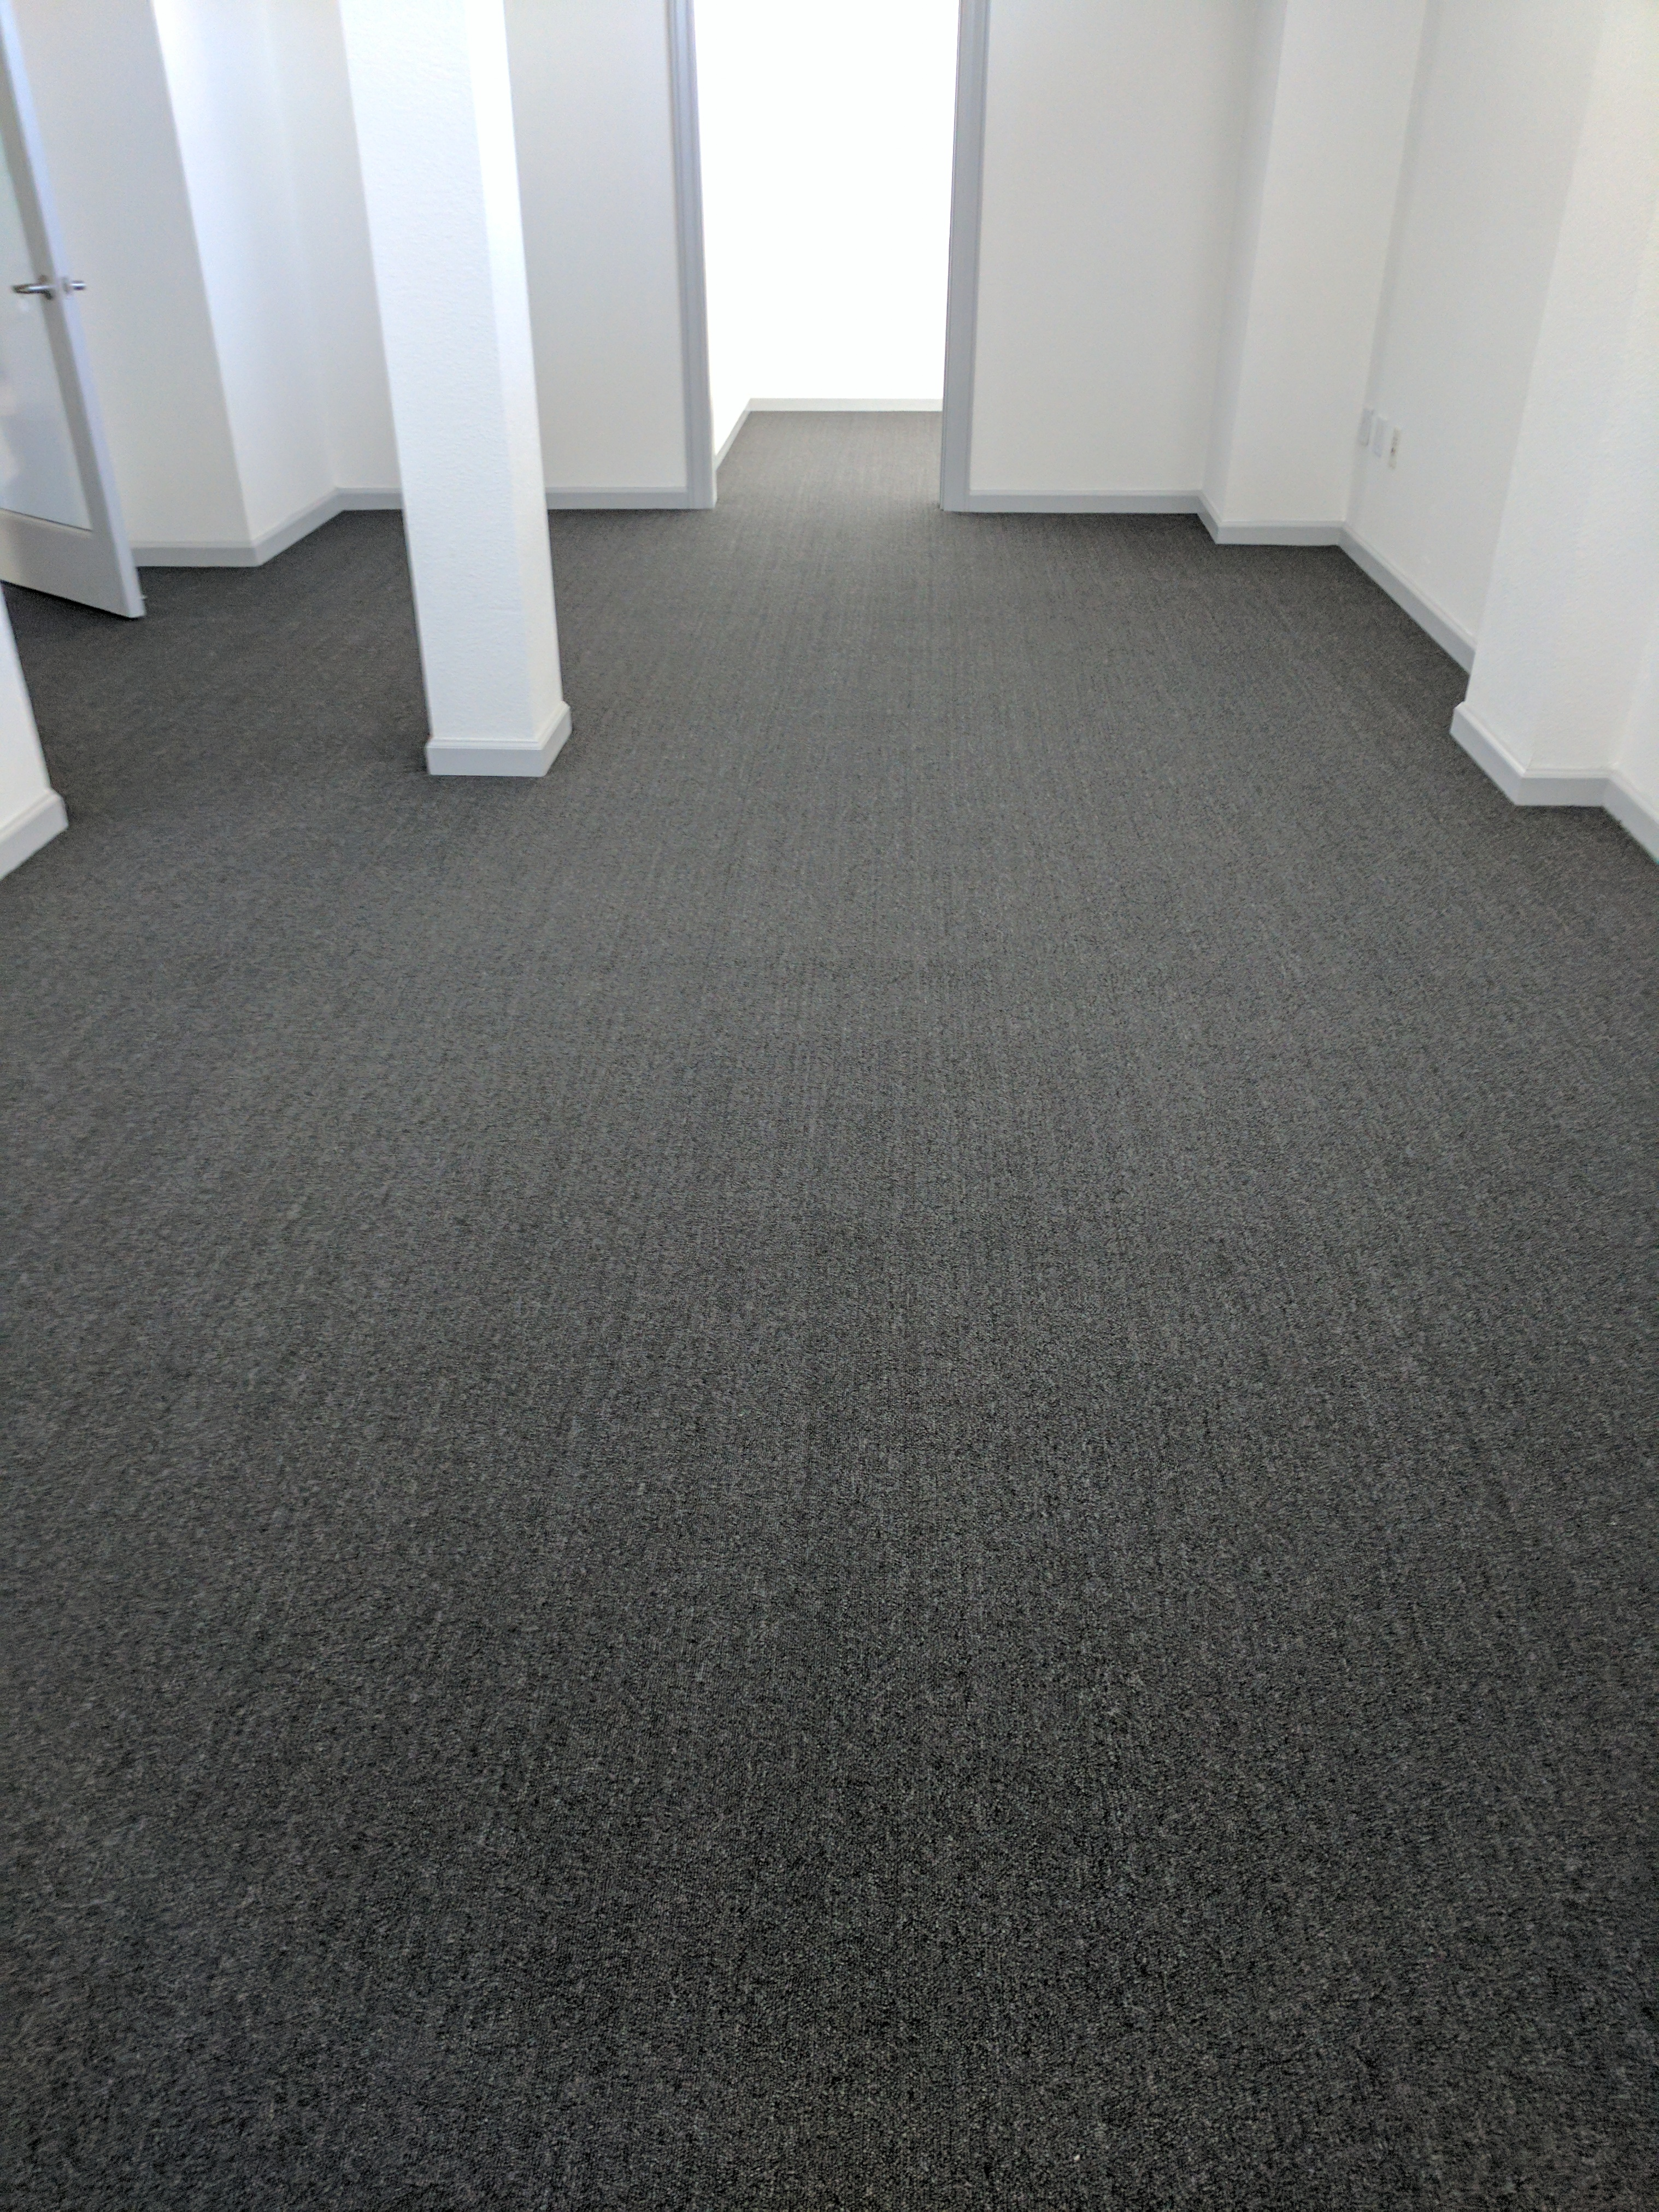 Commercial Carpet 22 Oz